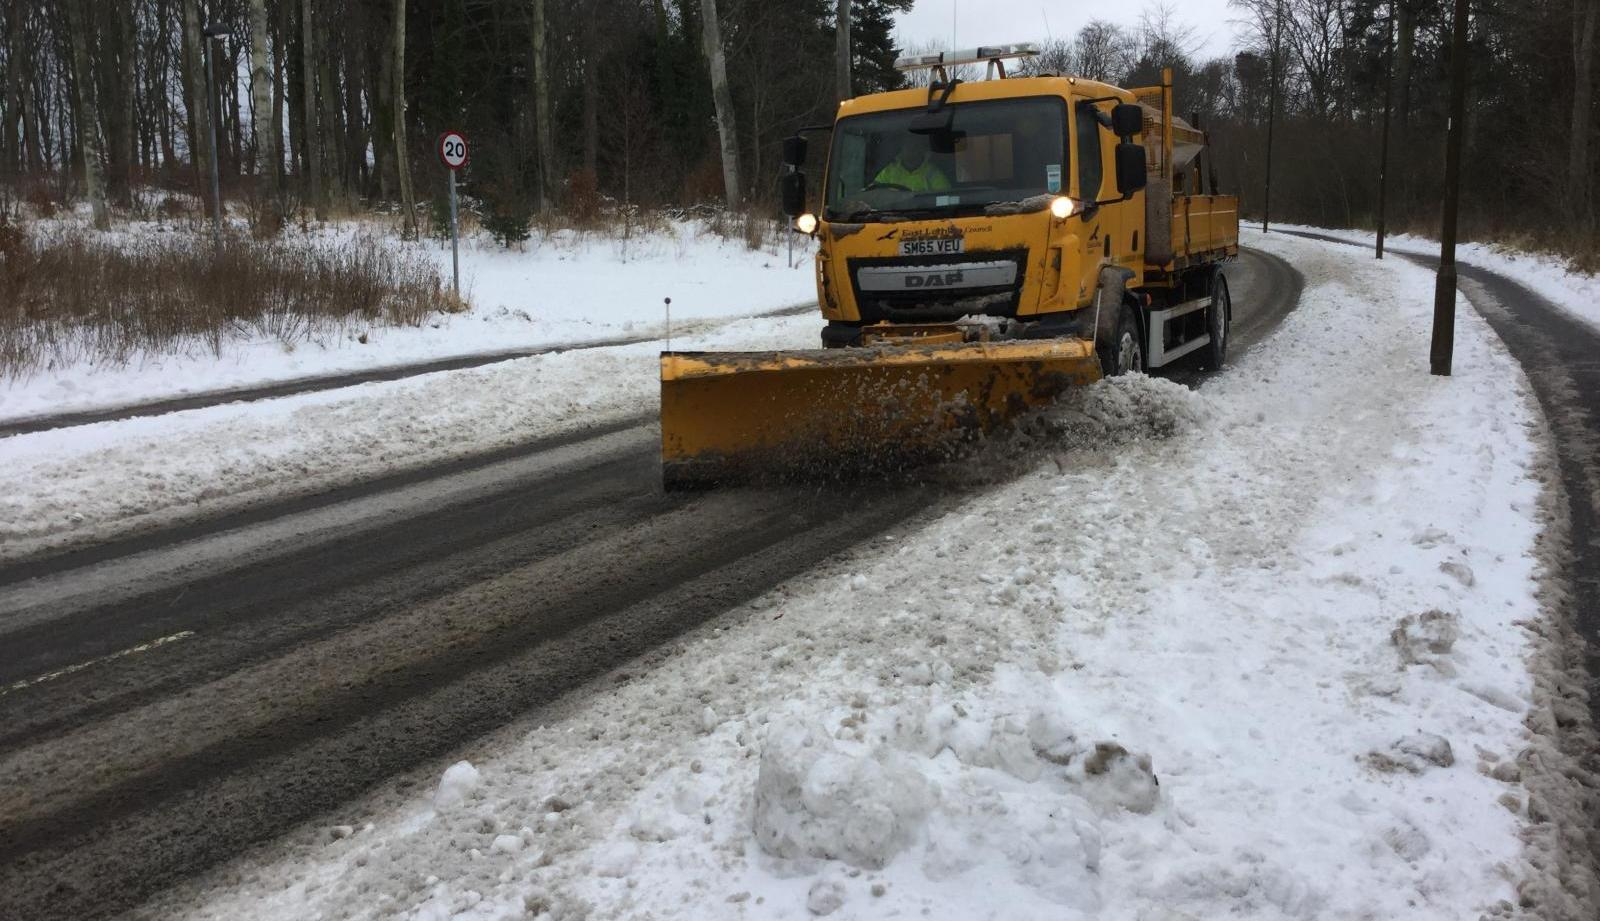 Snow, Rain And Strong Winds To Bring Disruption This Weekend